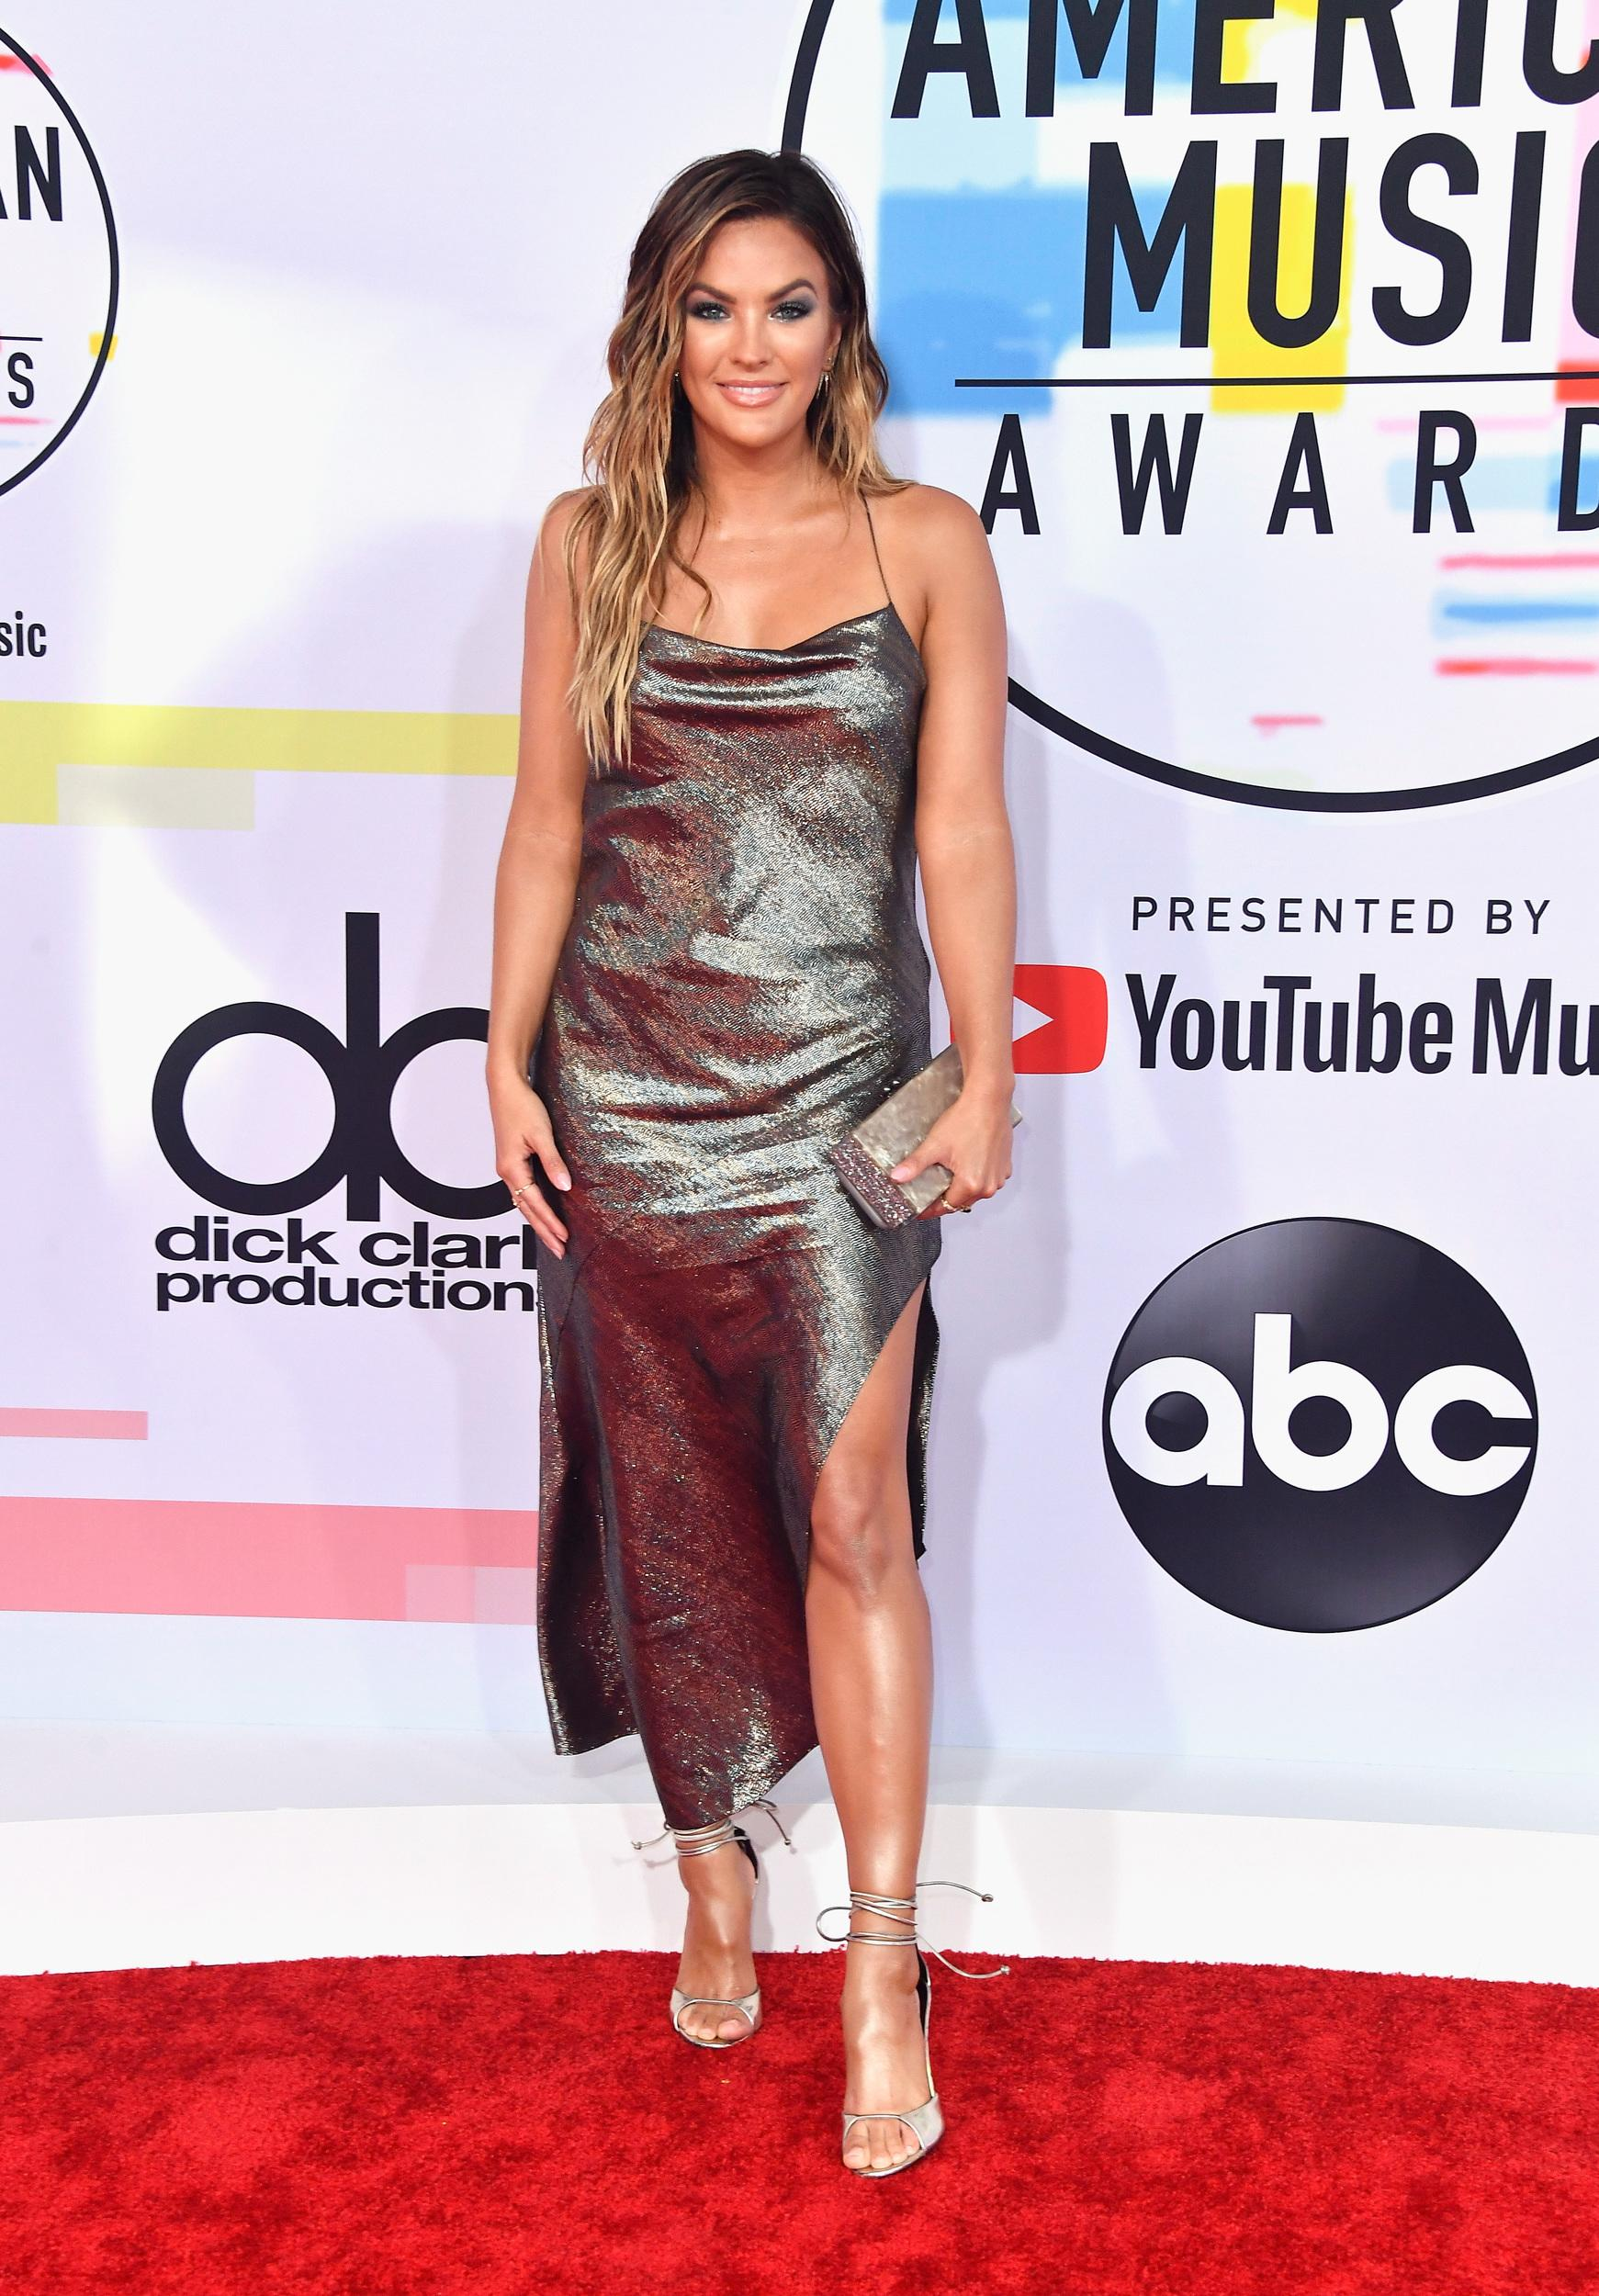 LOS ANGELES, CA - OCTOBER 09: Becca Tilley attends the 2018 American Music Awards at Microsoft Theater on October 9, 2018 in Los Angeles, California. (Photo by Frazer Harrison/Getty Images)